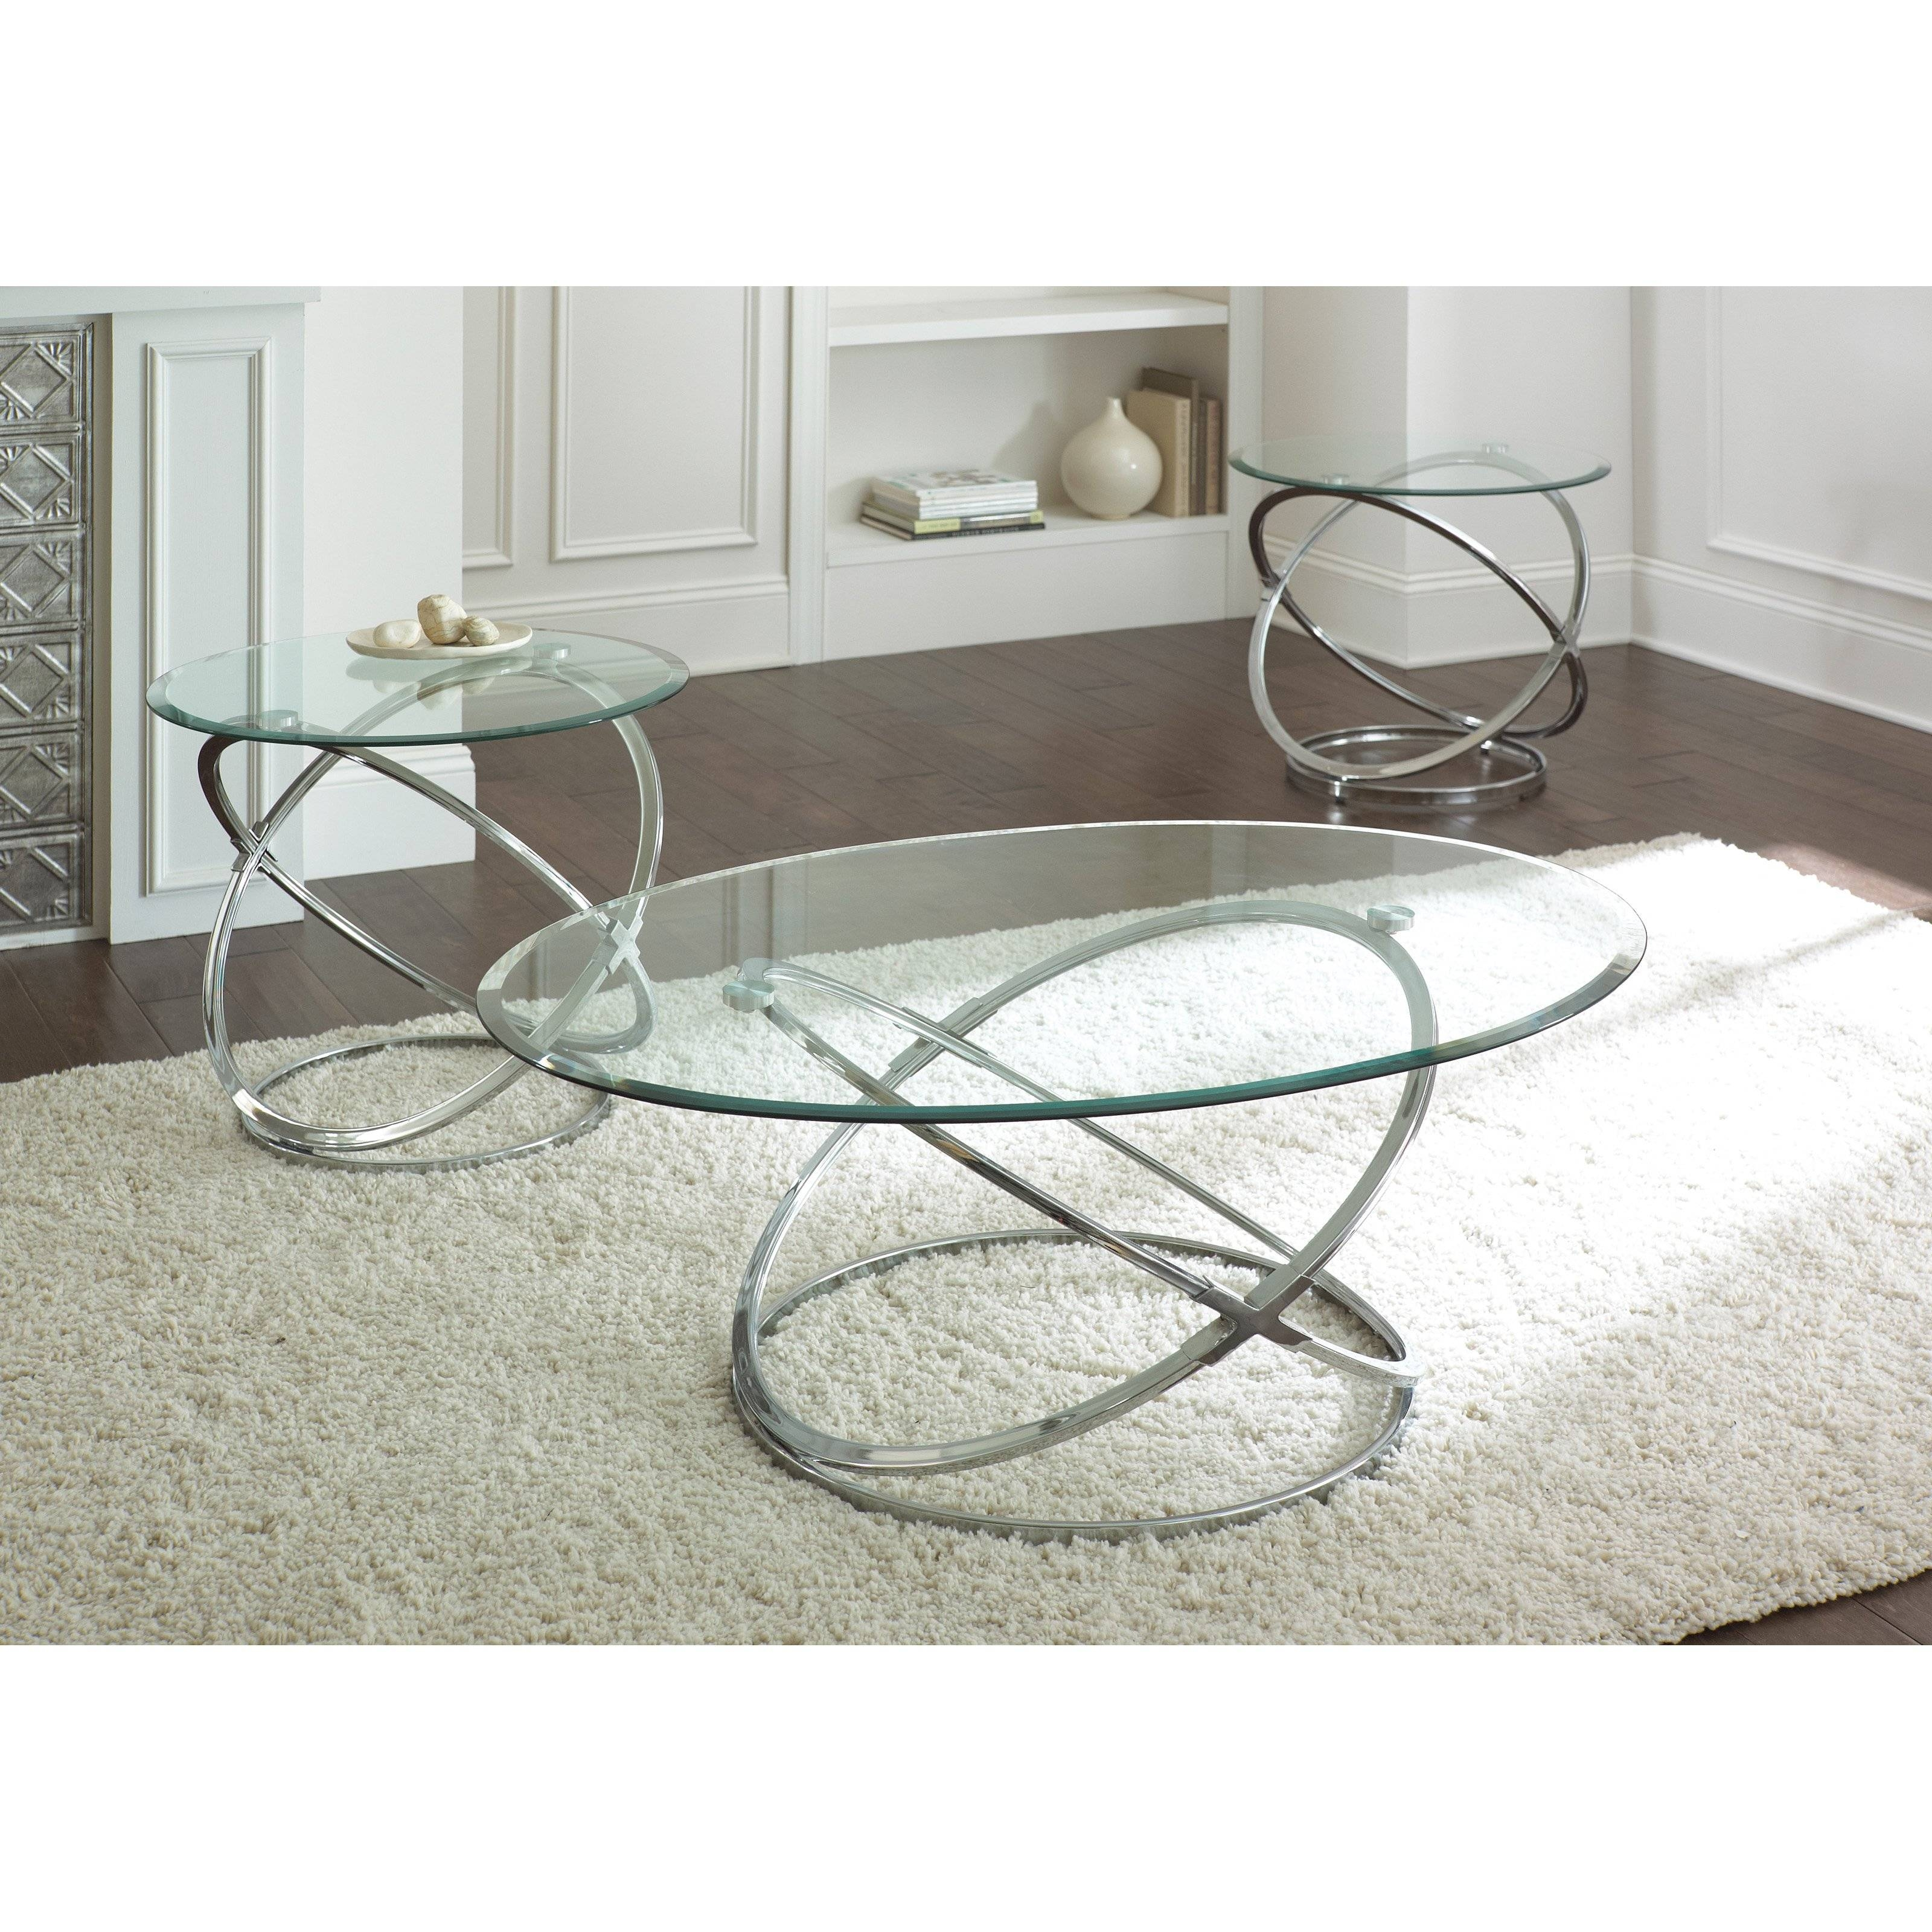 Glass And Chrome Coffee And End Tables | Coffee Tables Decoration regarding Glass Chrome Coffee Tables (Image 17 of 30)